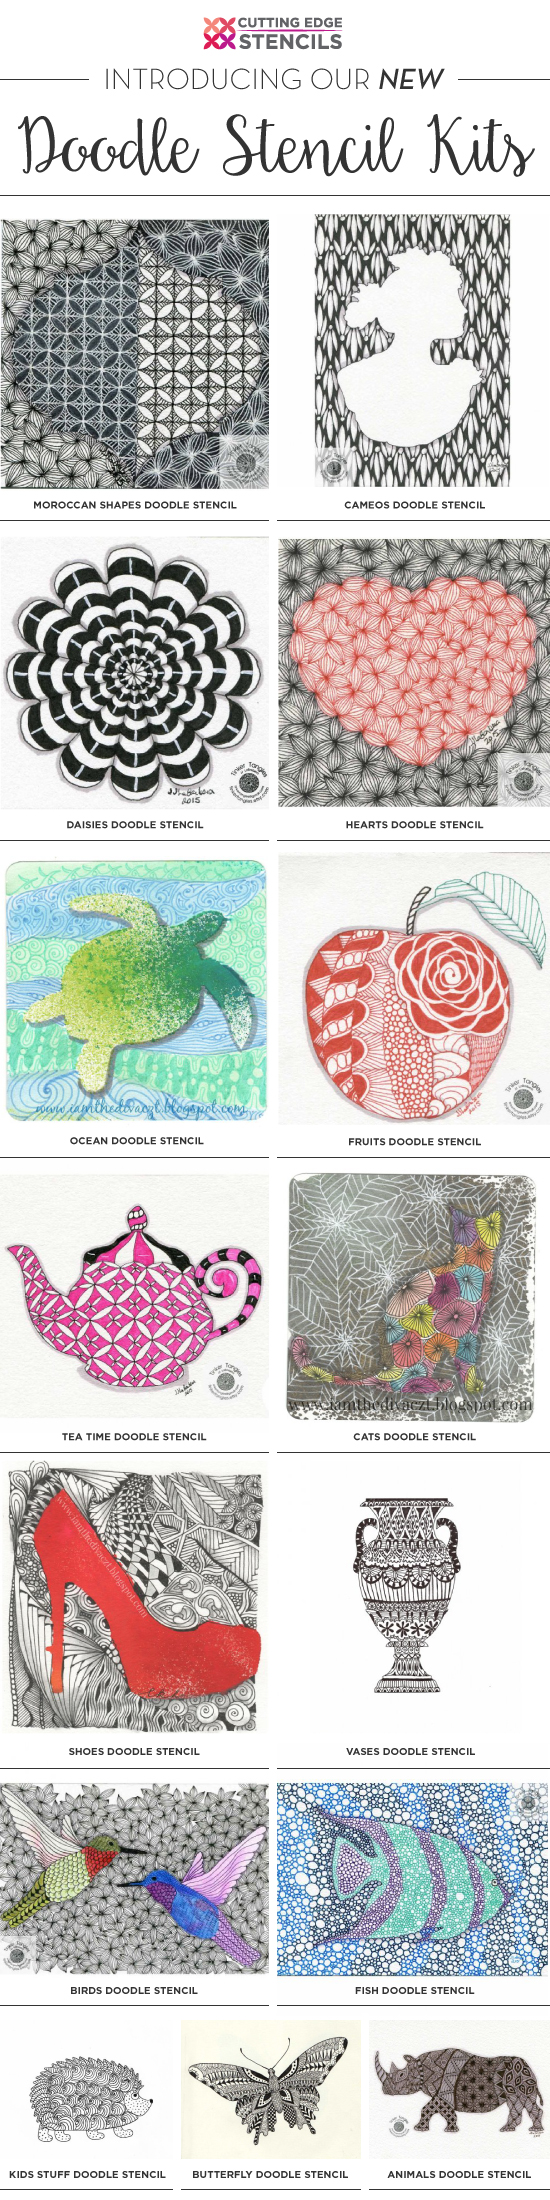 Cutting Edge Stencils is excited to introduce NEW Doodle Stencil Kits which are basic stencil shapes for doodling or tangling. http://www.cuttingedgestencils.com/doodle-stencils-tangling-stencil-doodling-coloring-pages.html